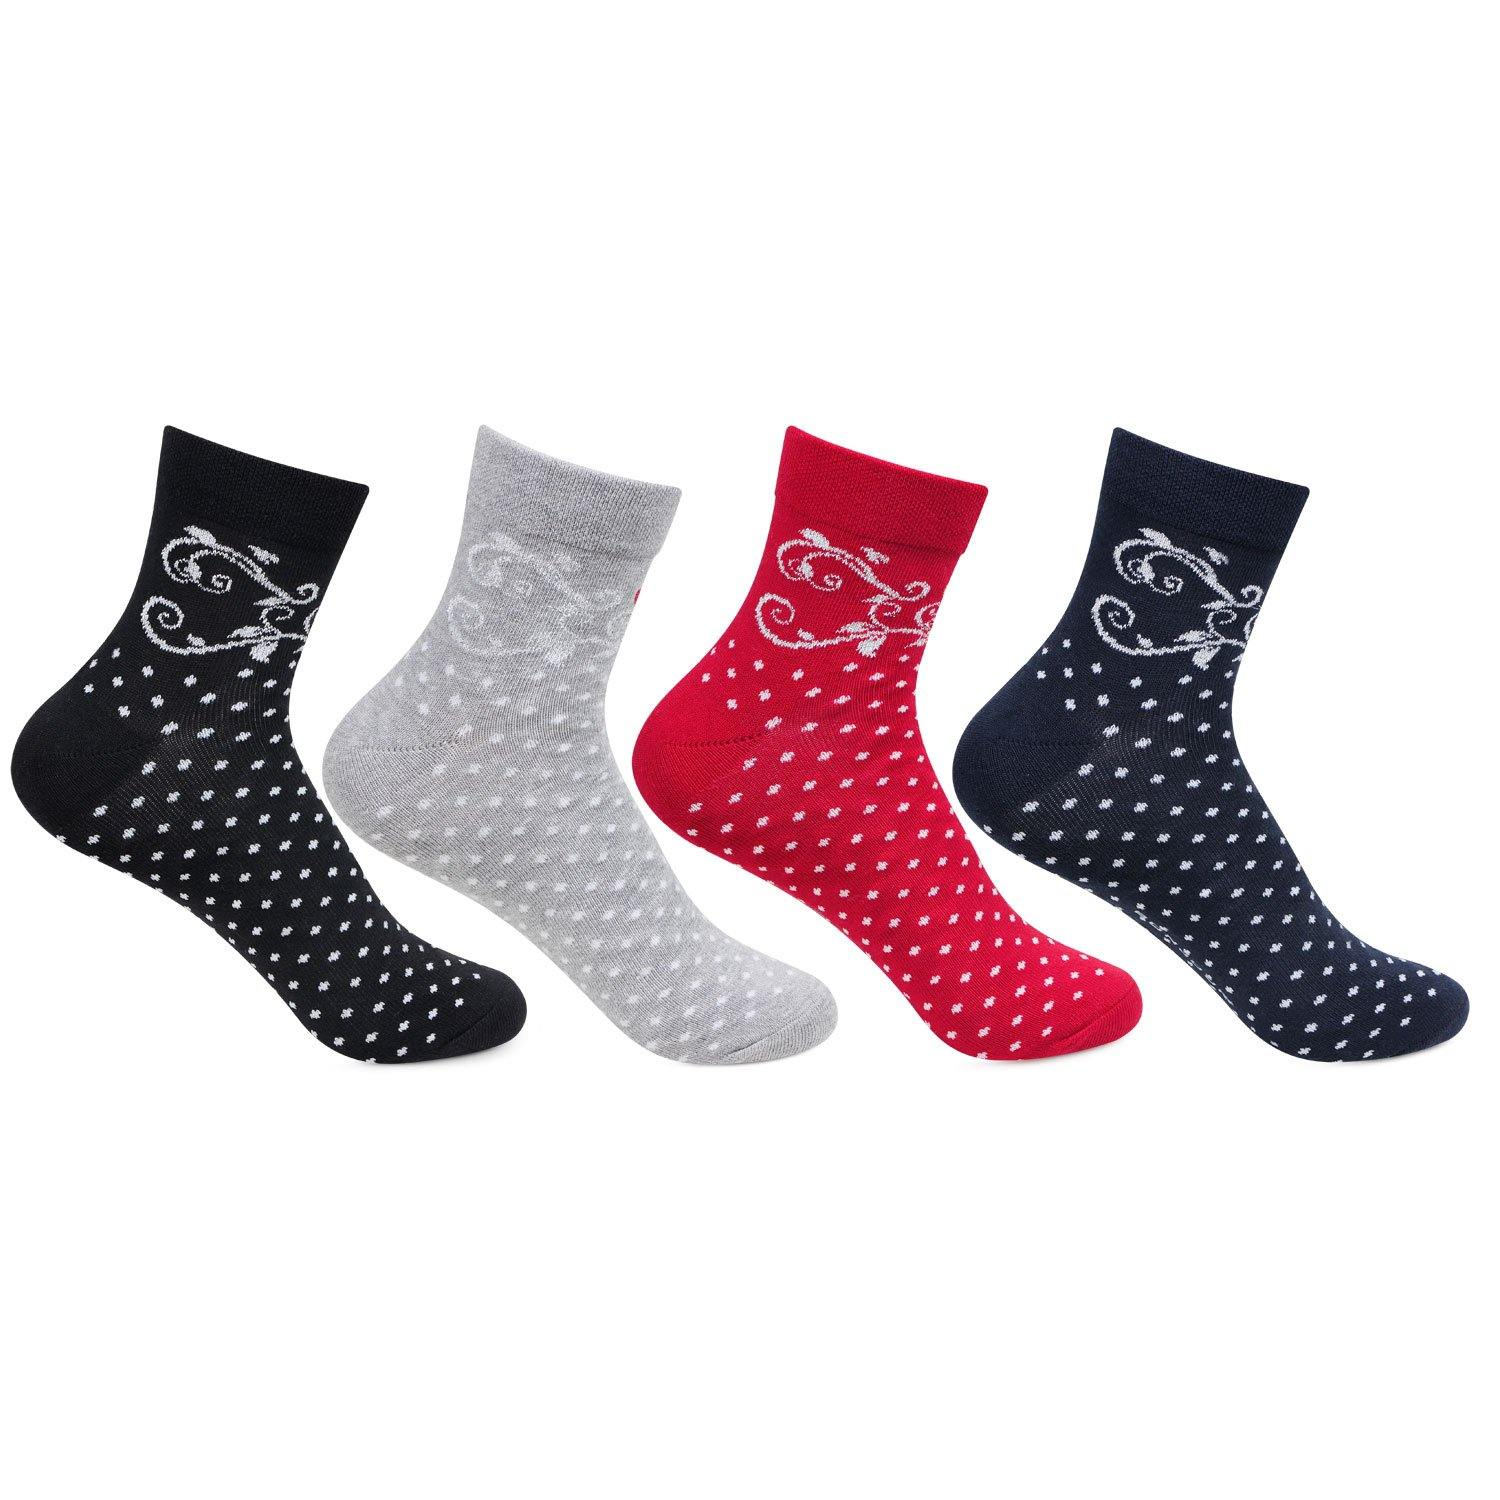 Women's Multicolored Ankle  Socks